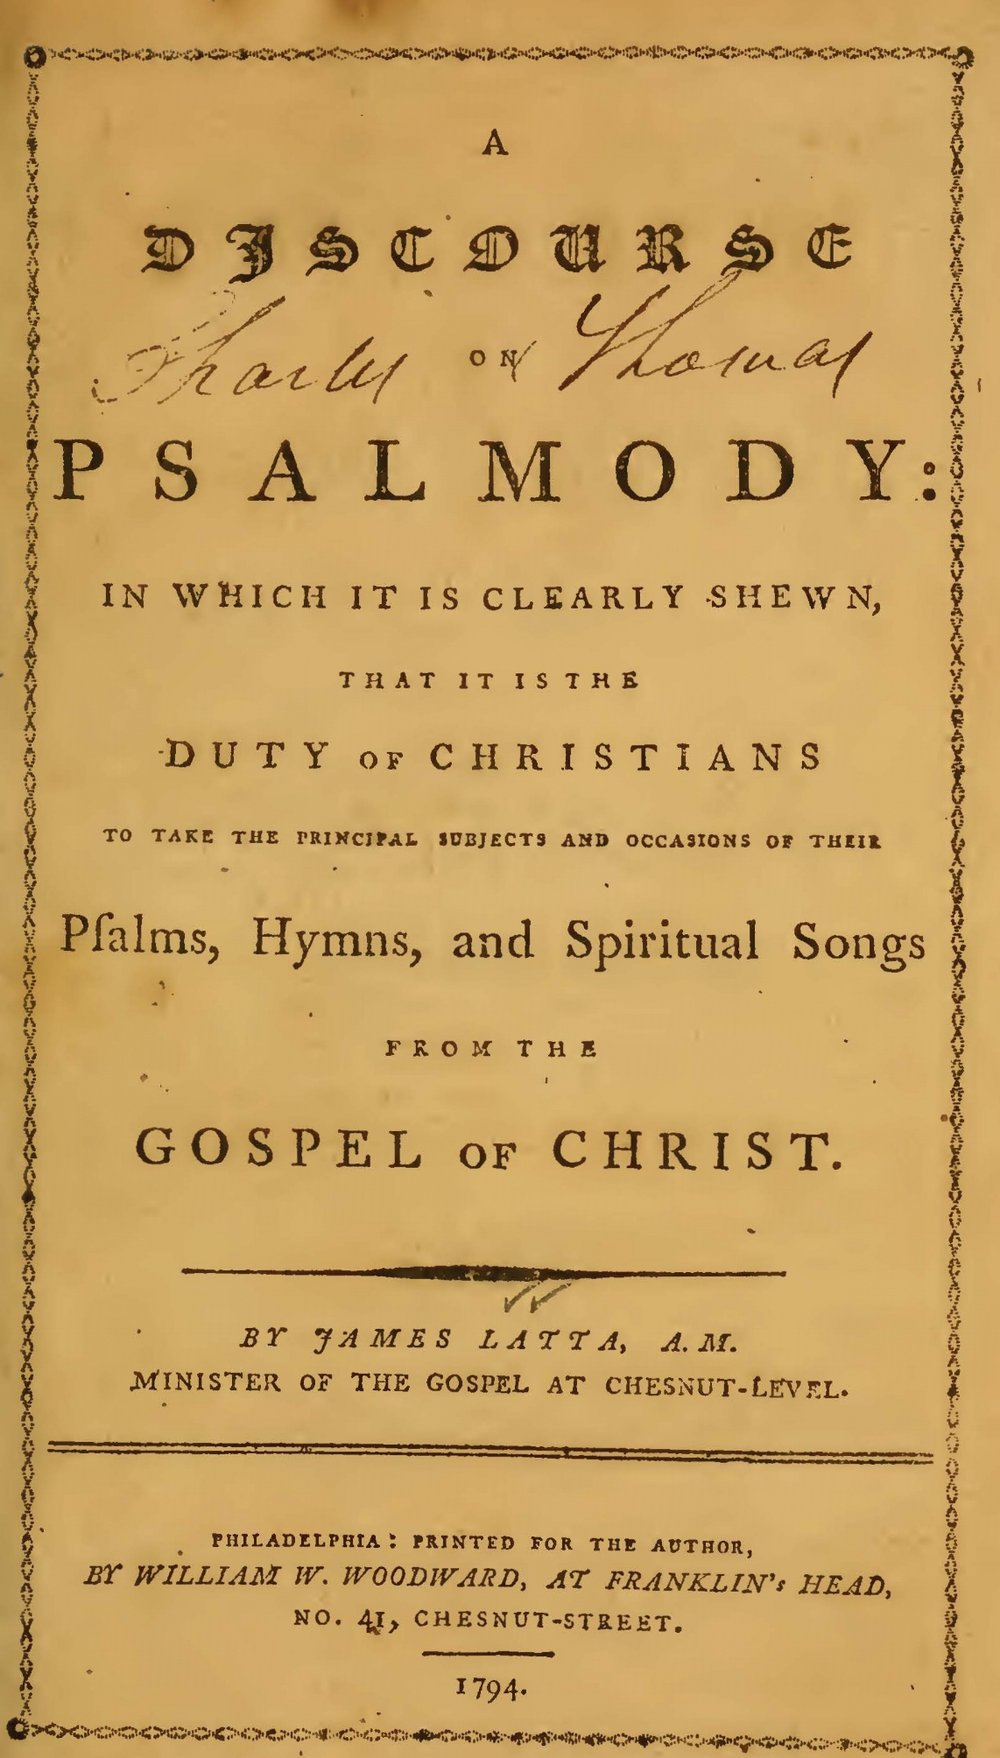 Latta, James, A Discourse on Psalmody Title Page.jpg